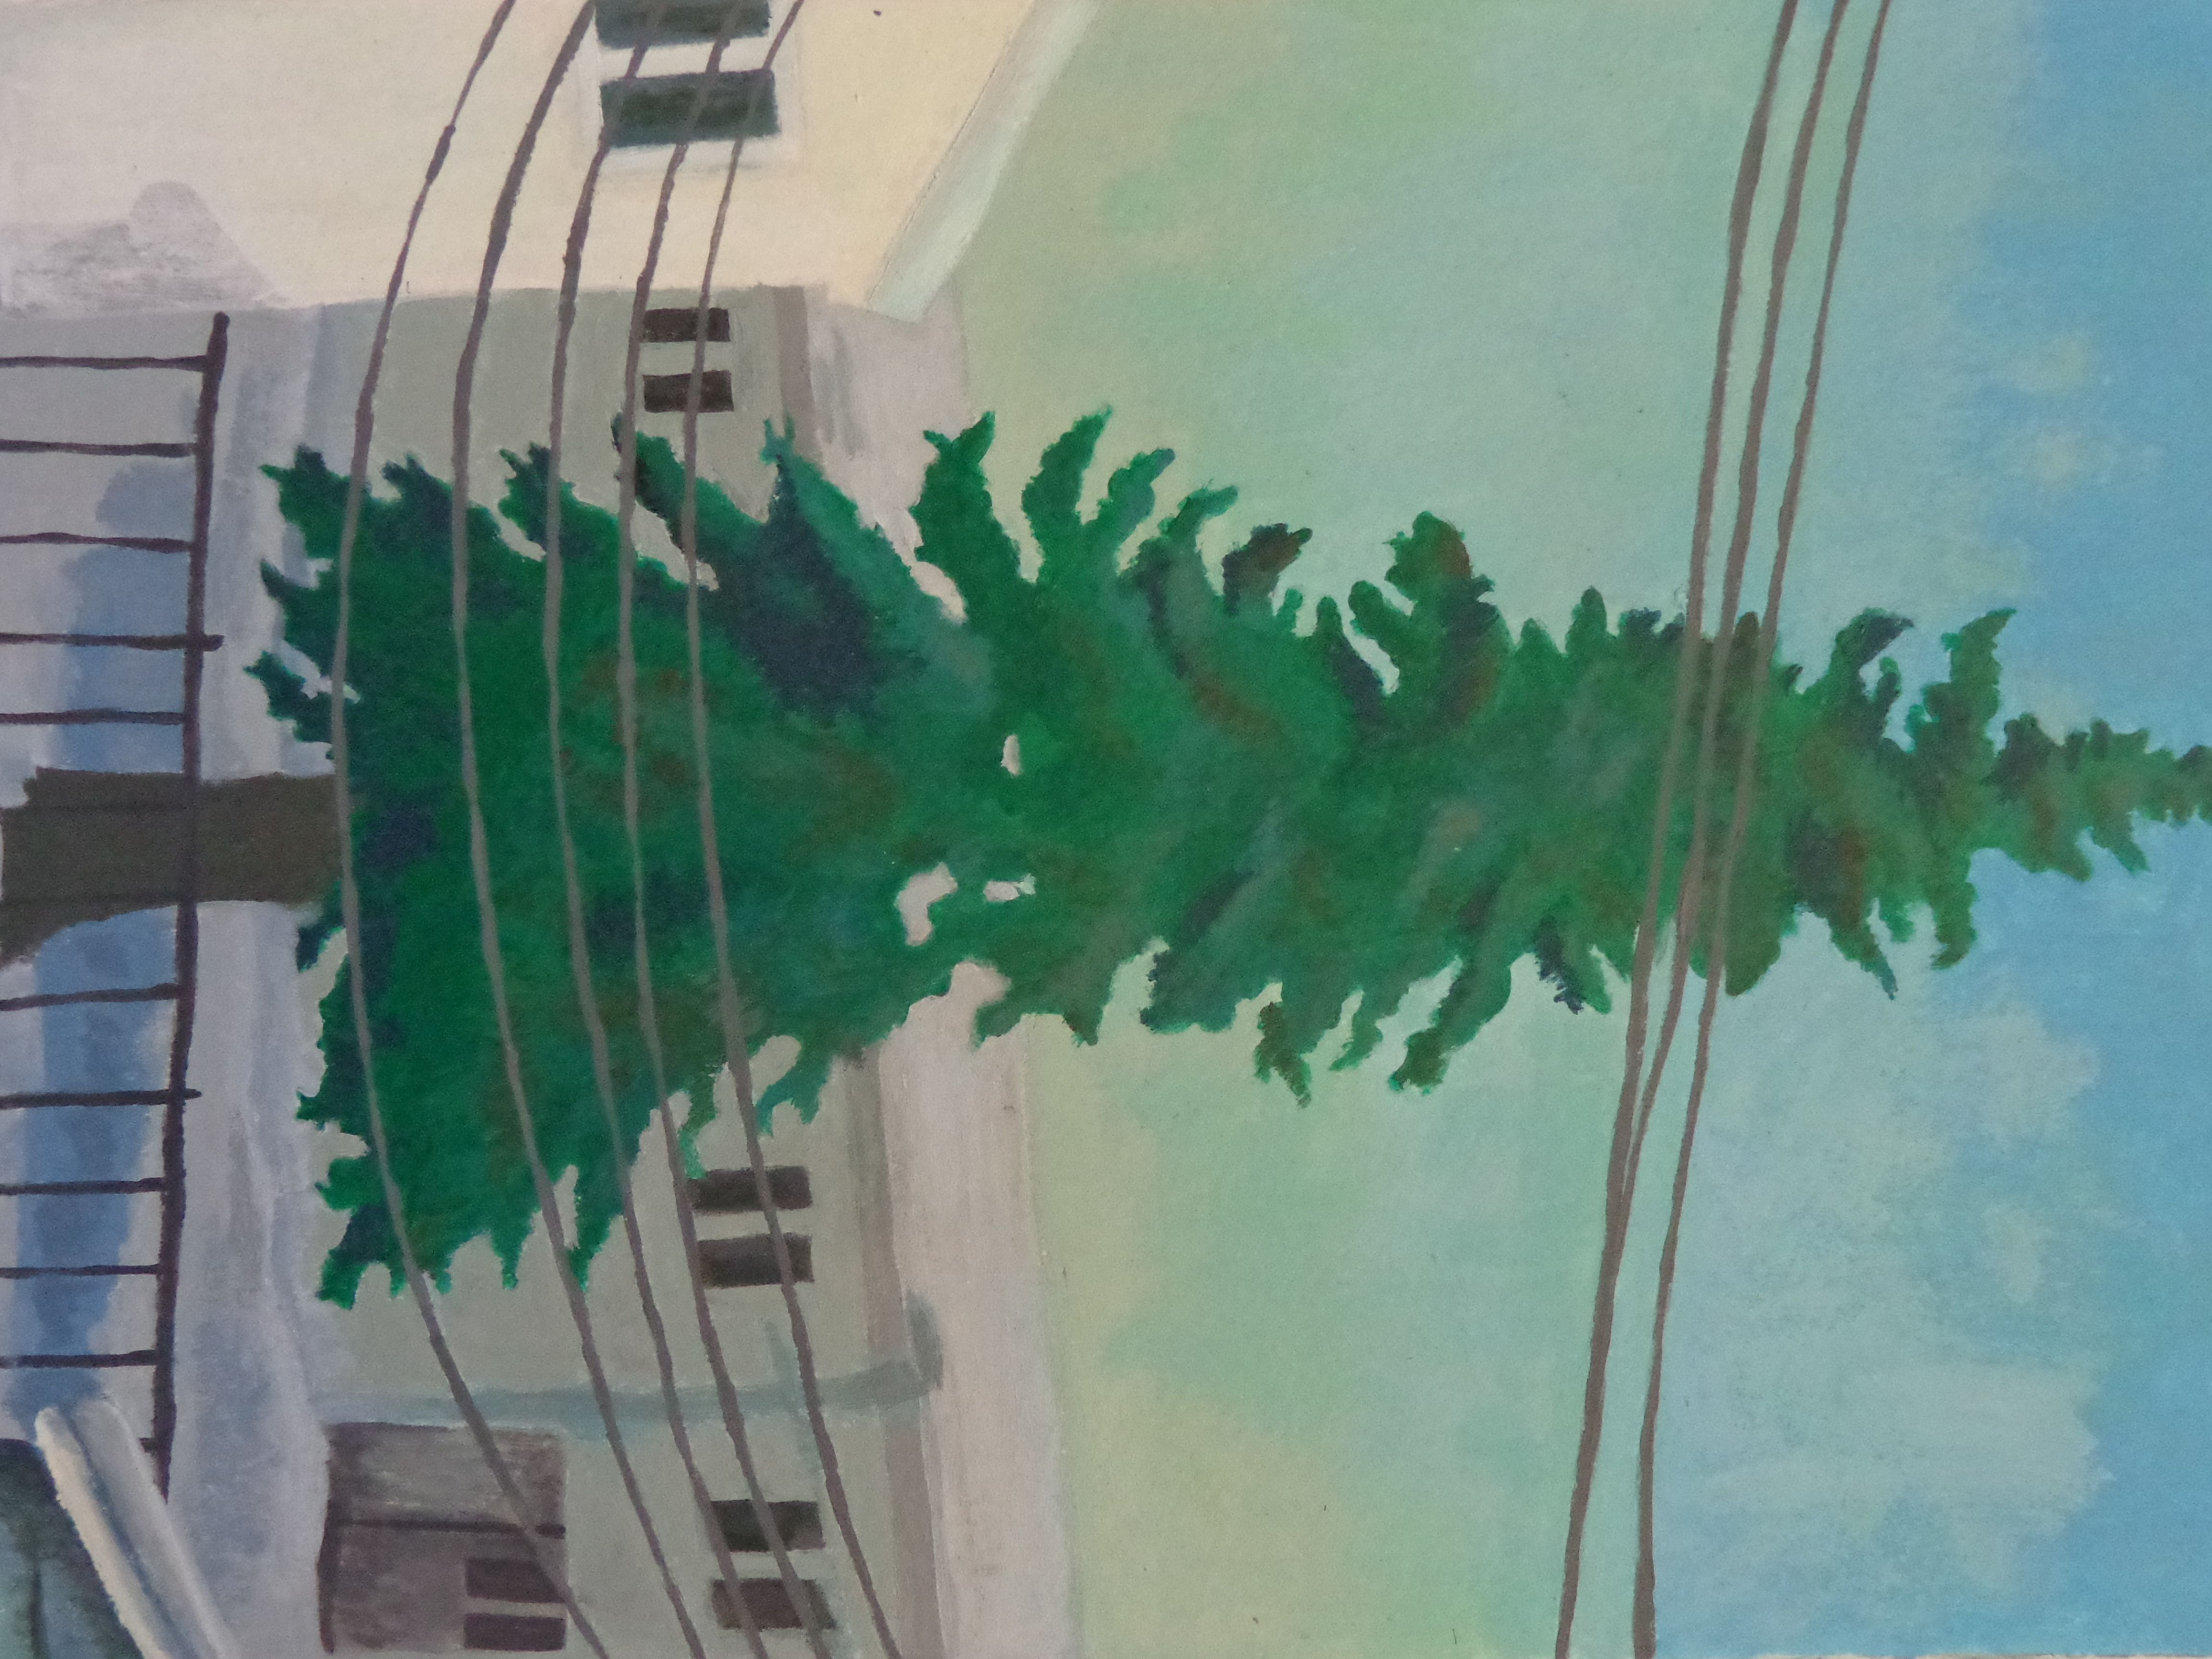 afternoon acrylic painting of pine tree in Fairbanks, AK in early winter. Buy at: https://www.etsy.com/listing/187864363/alaskan-pine-throughout-the-day-4-part